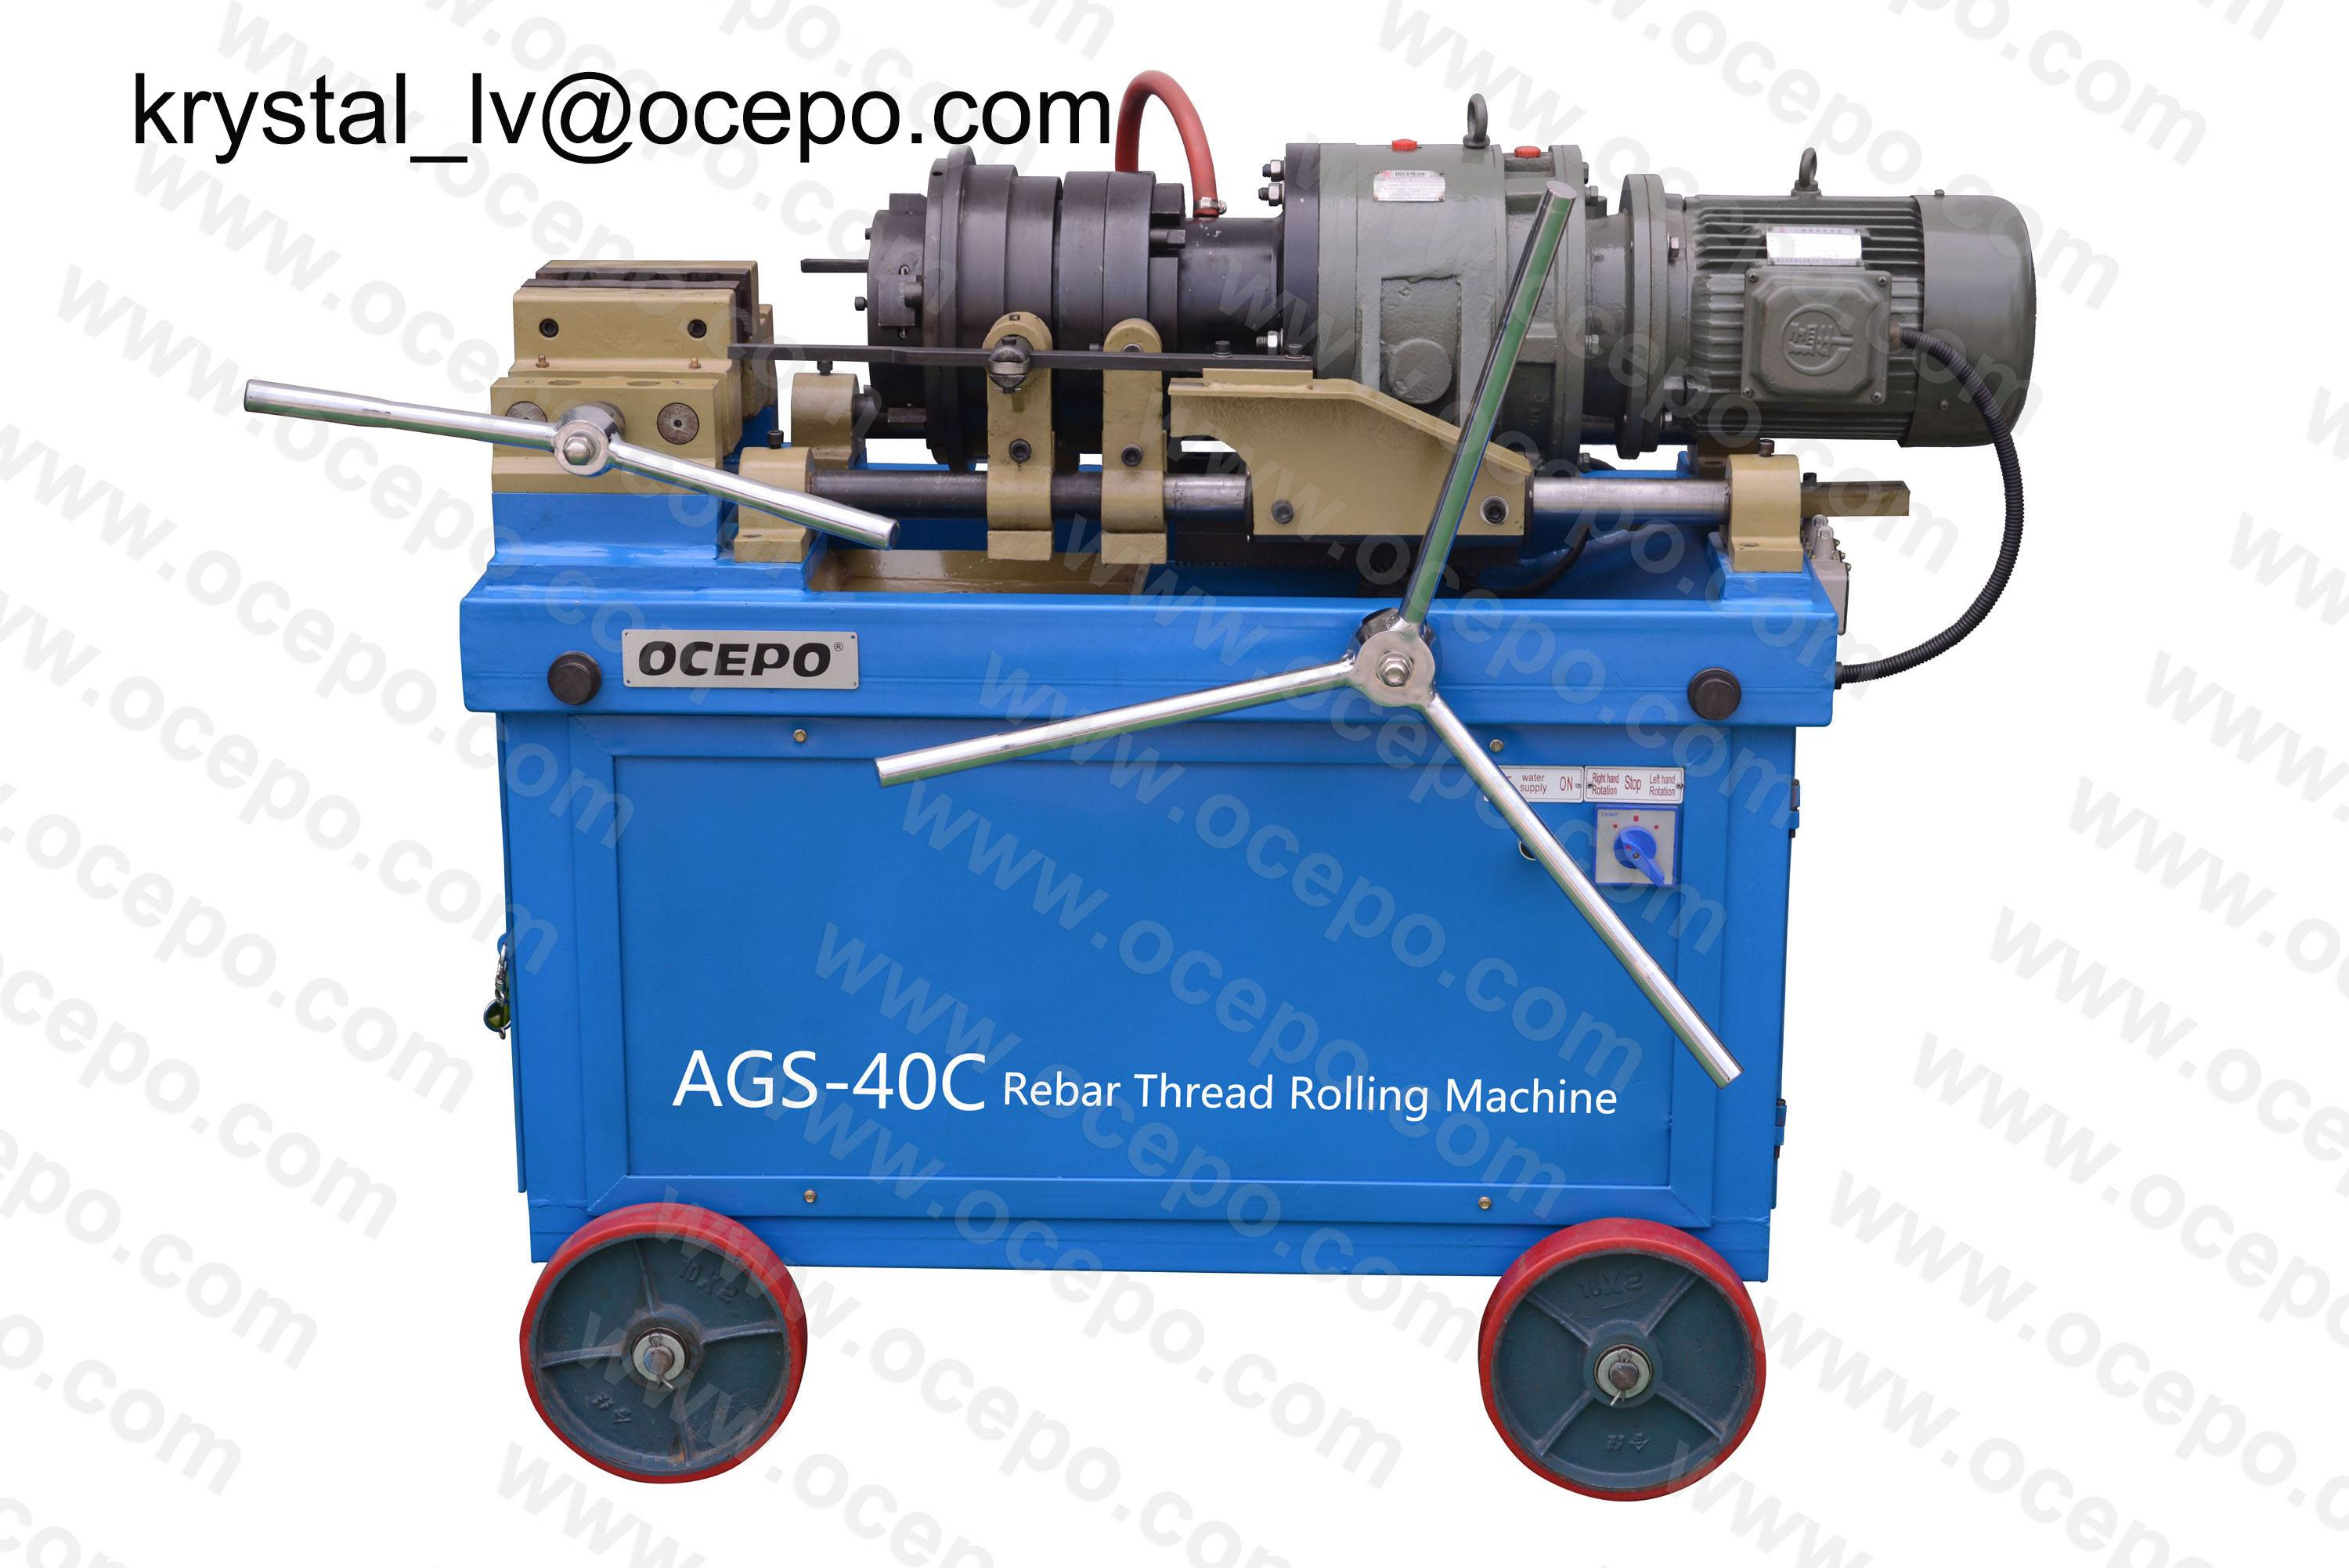 AGS-40C Rebar Thread Rolling Machine